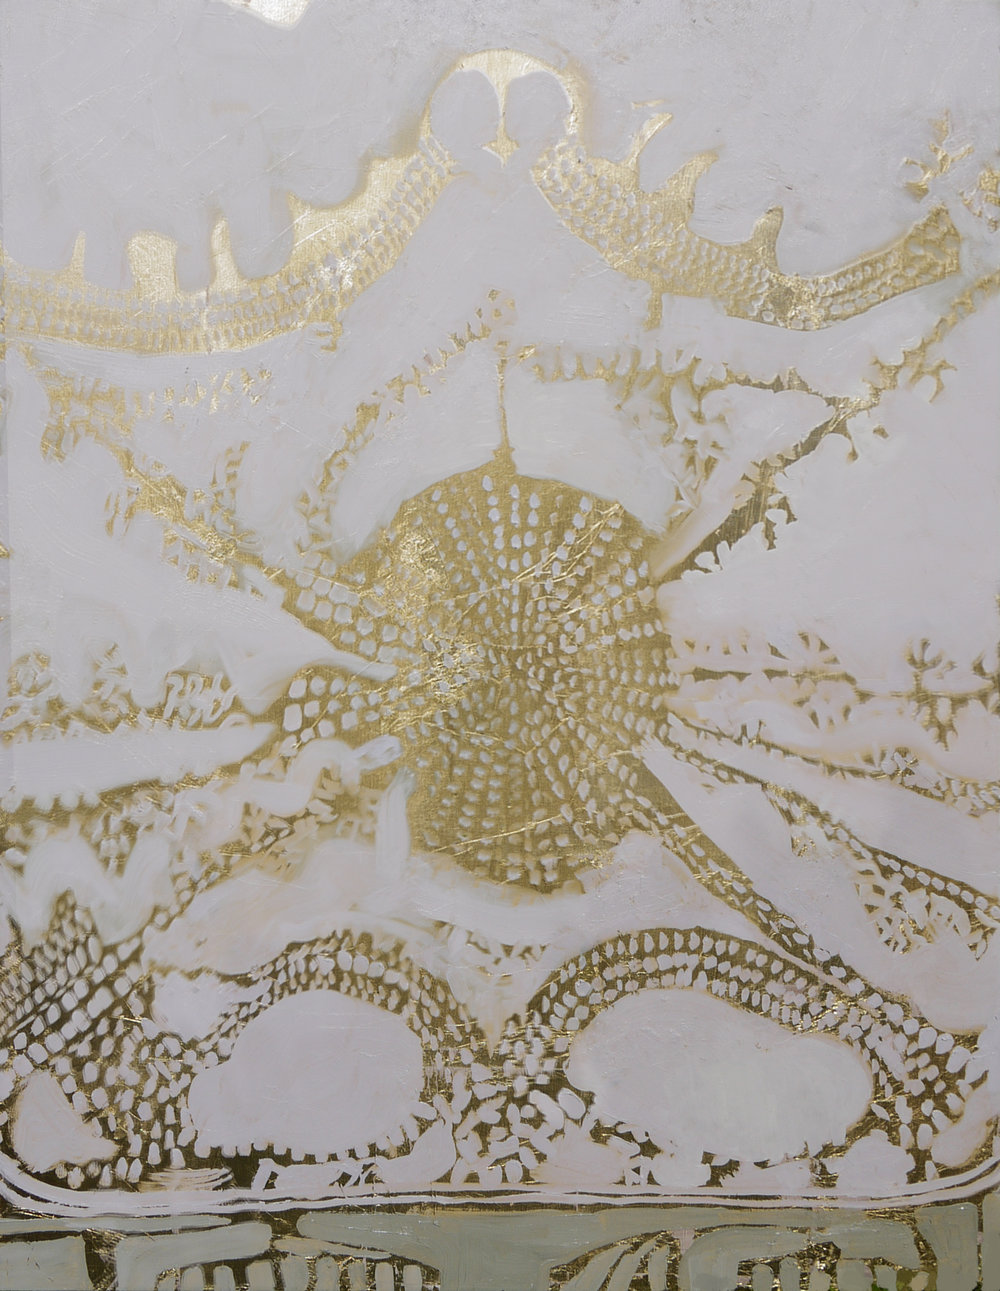 Kimberly Brooks  Ceiling of Gold , 2017 oil and gold leaf on linen 30h x 24w in.